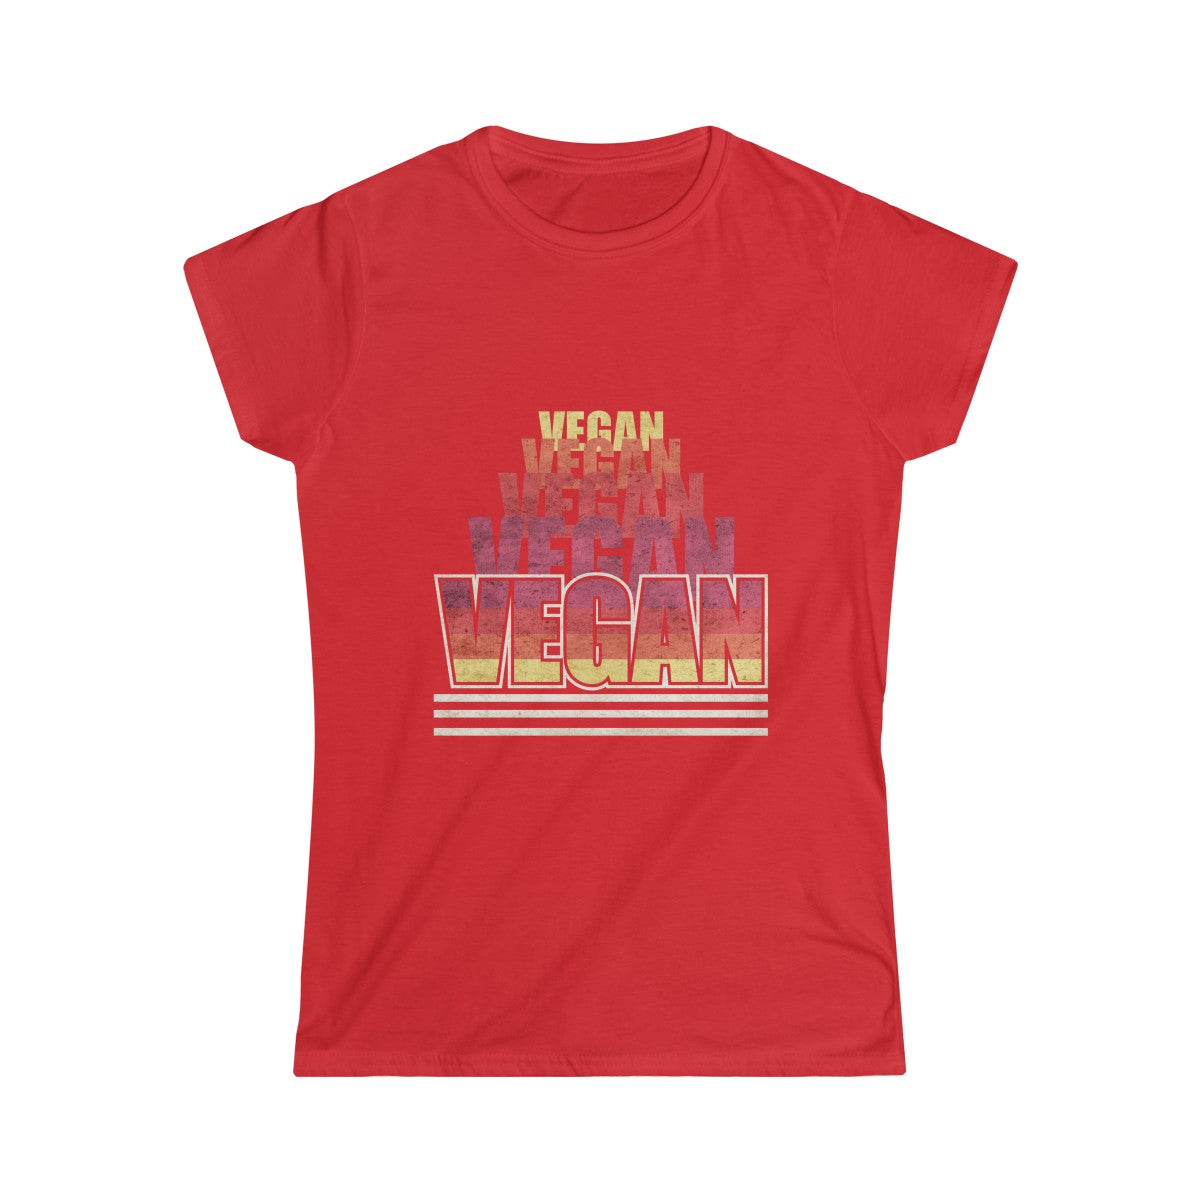 70s Retro Vegan III - Women's Junior Fit T-Shirt - My Vegan Menu